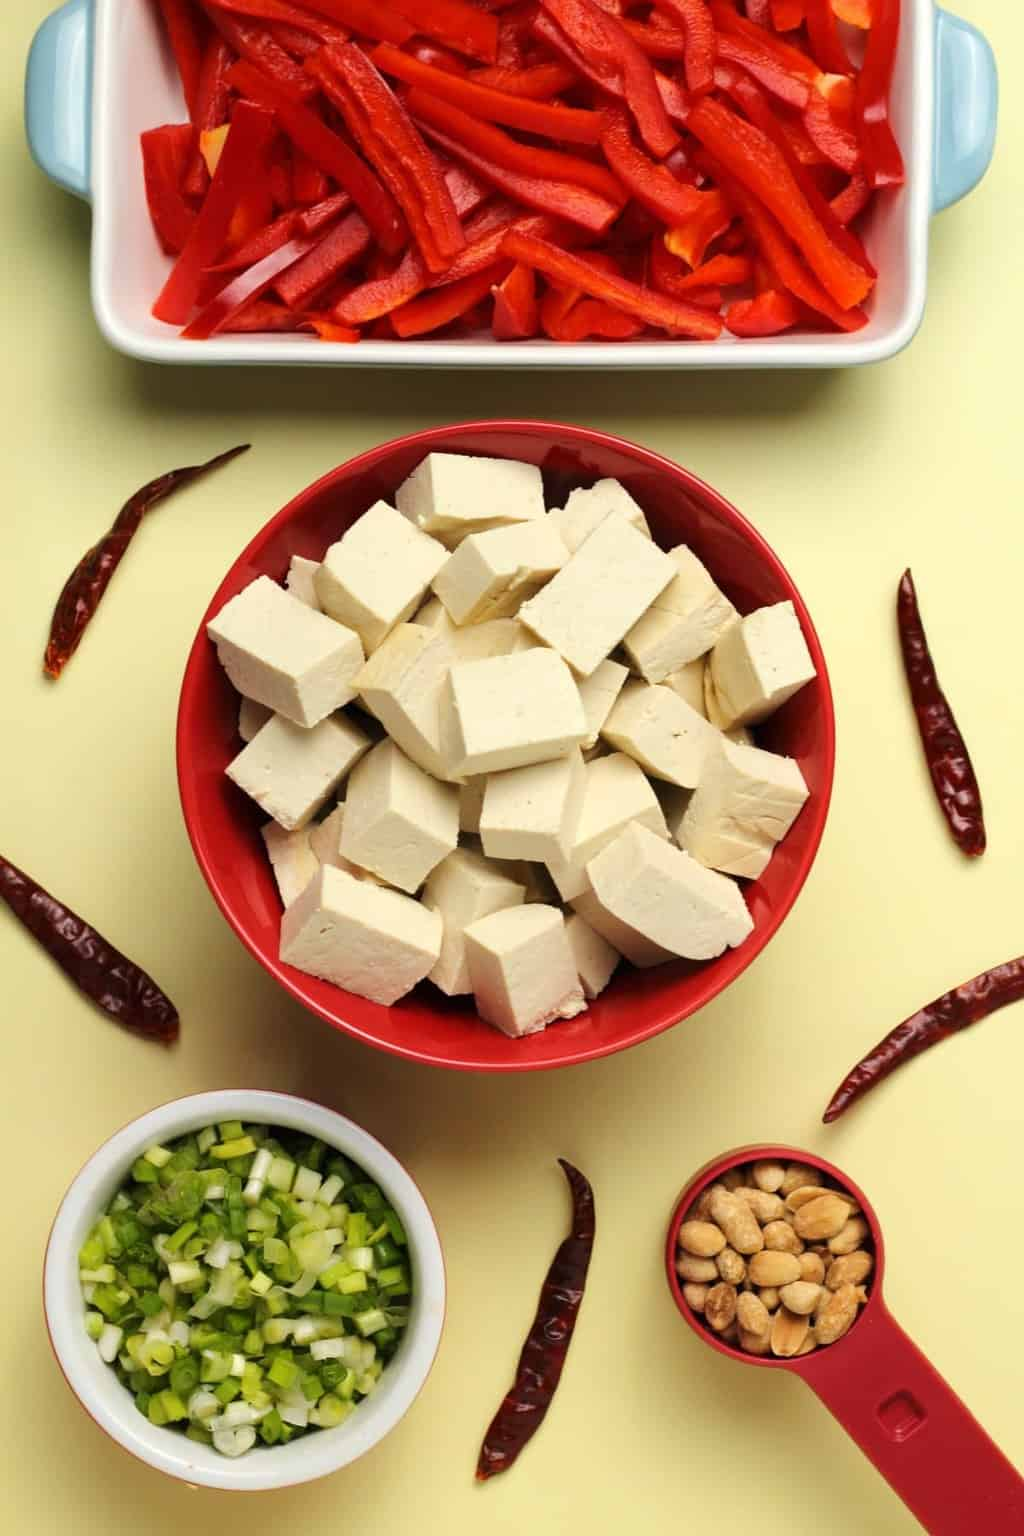 Ingredients for kung pao tofu, cubes of tofu in a bowl, sliced red peppers, dried chilies, chopped spring onion and roasted salted peanuts.